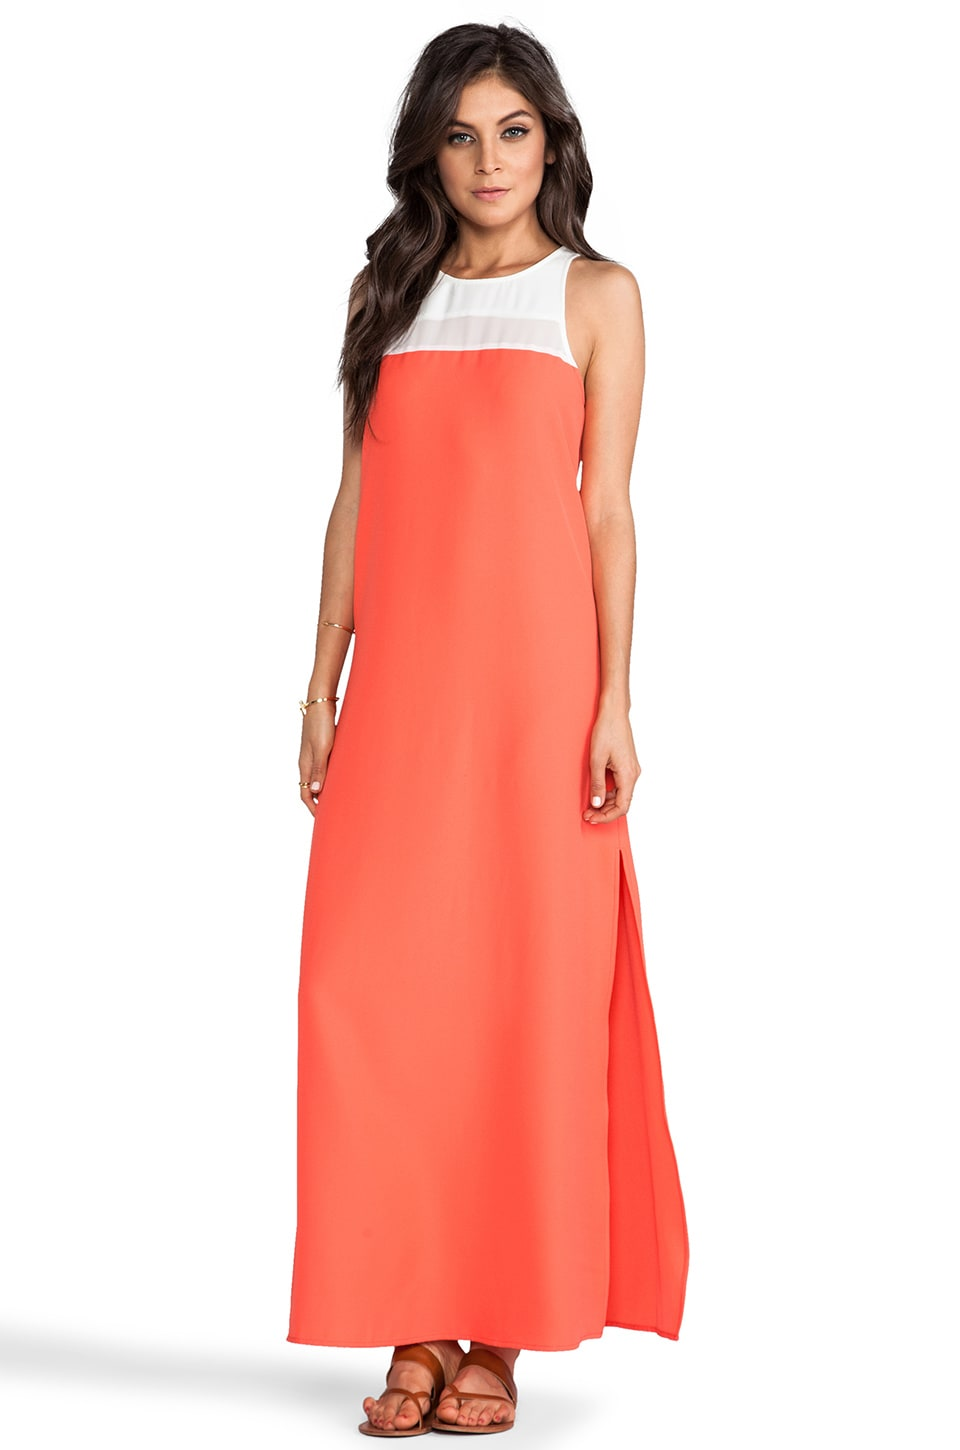 BB Dakota Sola Color Block Maxi Dress in Dirty White & Sevilla Orange